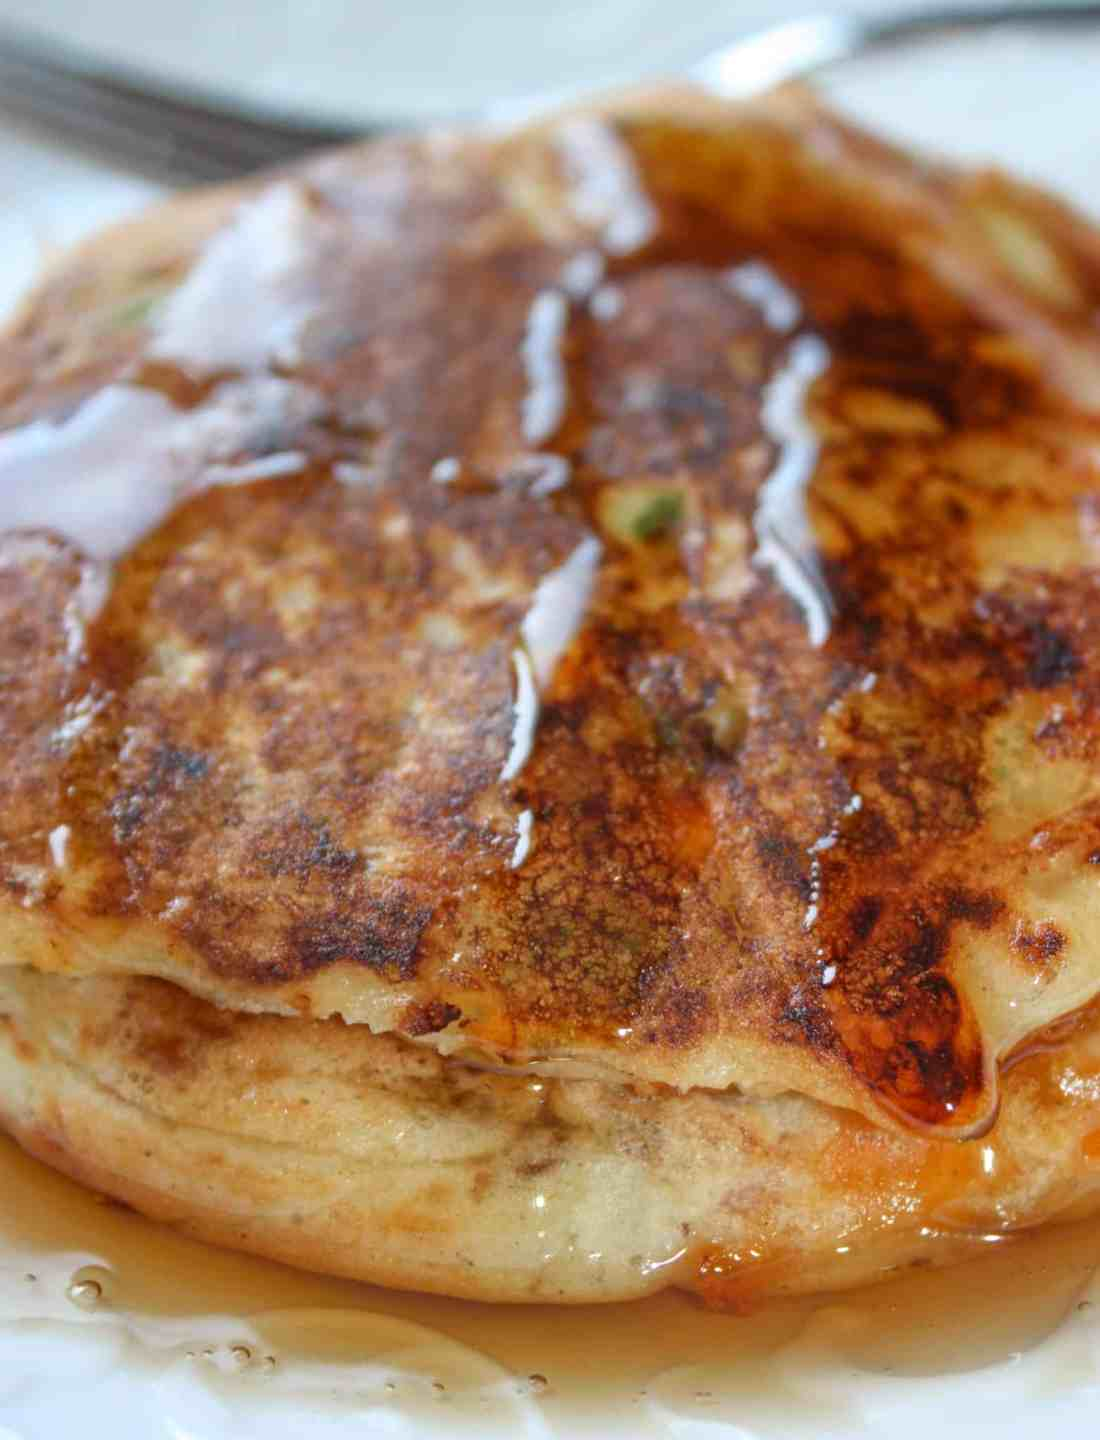 Gluten Free Western Pancakes are a savoury pancake loaded with ham, bacon, onions, green pepper and cheese.  Pour on some sweet, pure maple syrup for a delightful contrast of flavours!